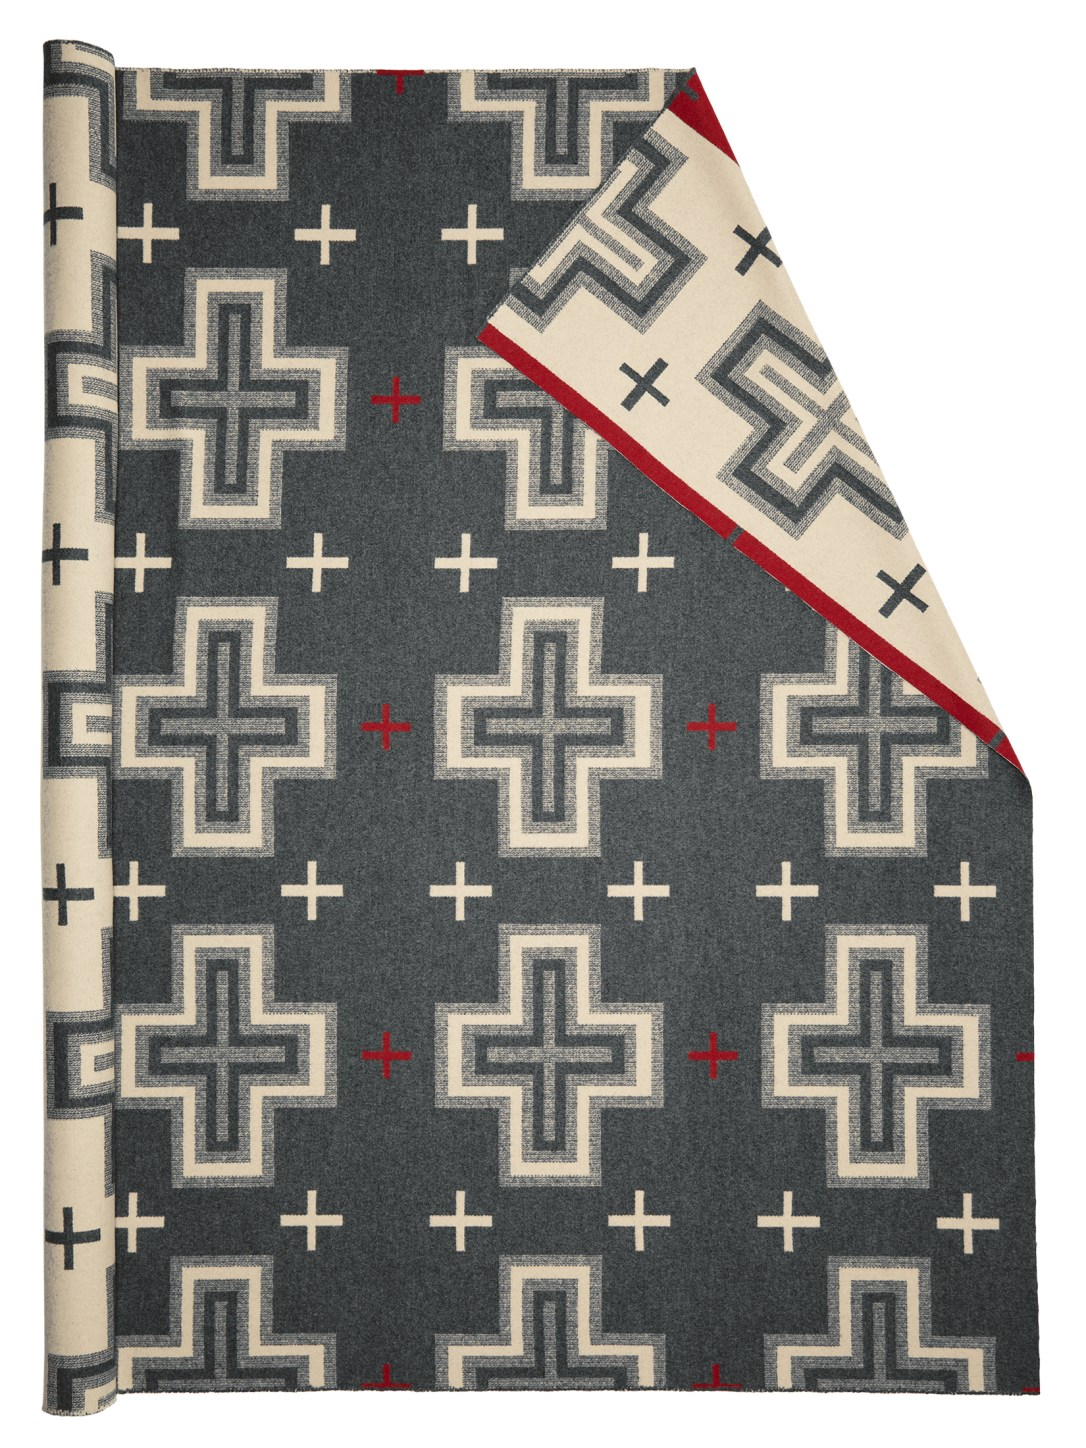 Roll of pendleton wool fabric in San Miguel, grey background with large ivory crosses and small red crosses.